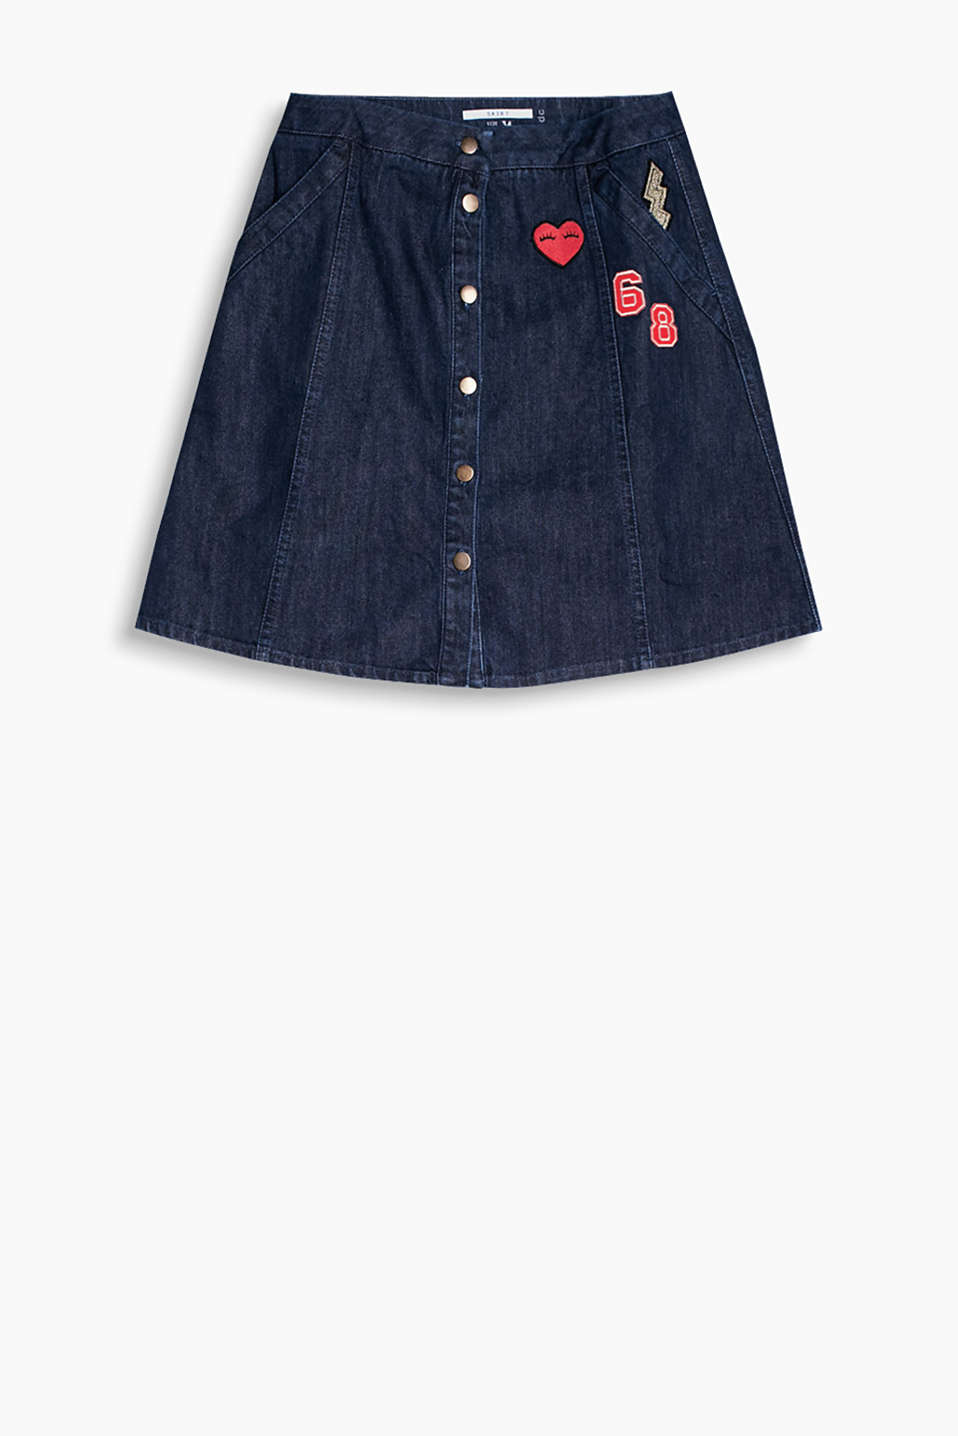 We love appliqués! Flared denim skirt with a button placket and trendy appliqués